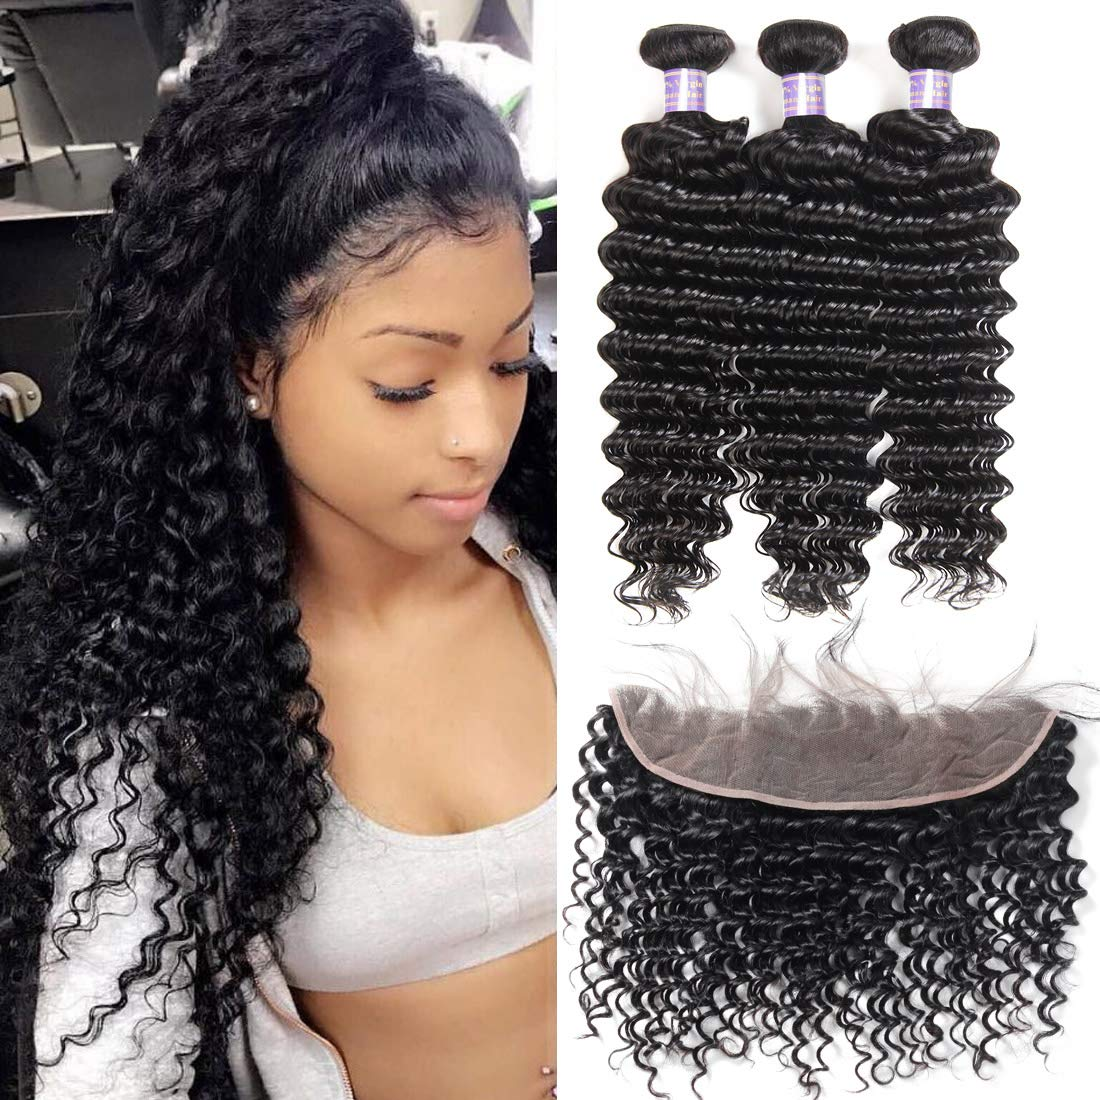 Allove Hair 8a Brazilian Deep Wave Bundles with Frontal (14 16 18+12) Unprocessed Virgin Human Hair Weave Wet and Wavy Bundles with Ear to Ear Frontal Lace Closure with Baby Hair Natural Black